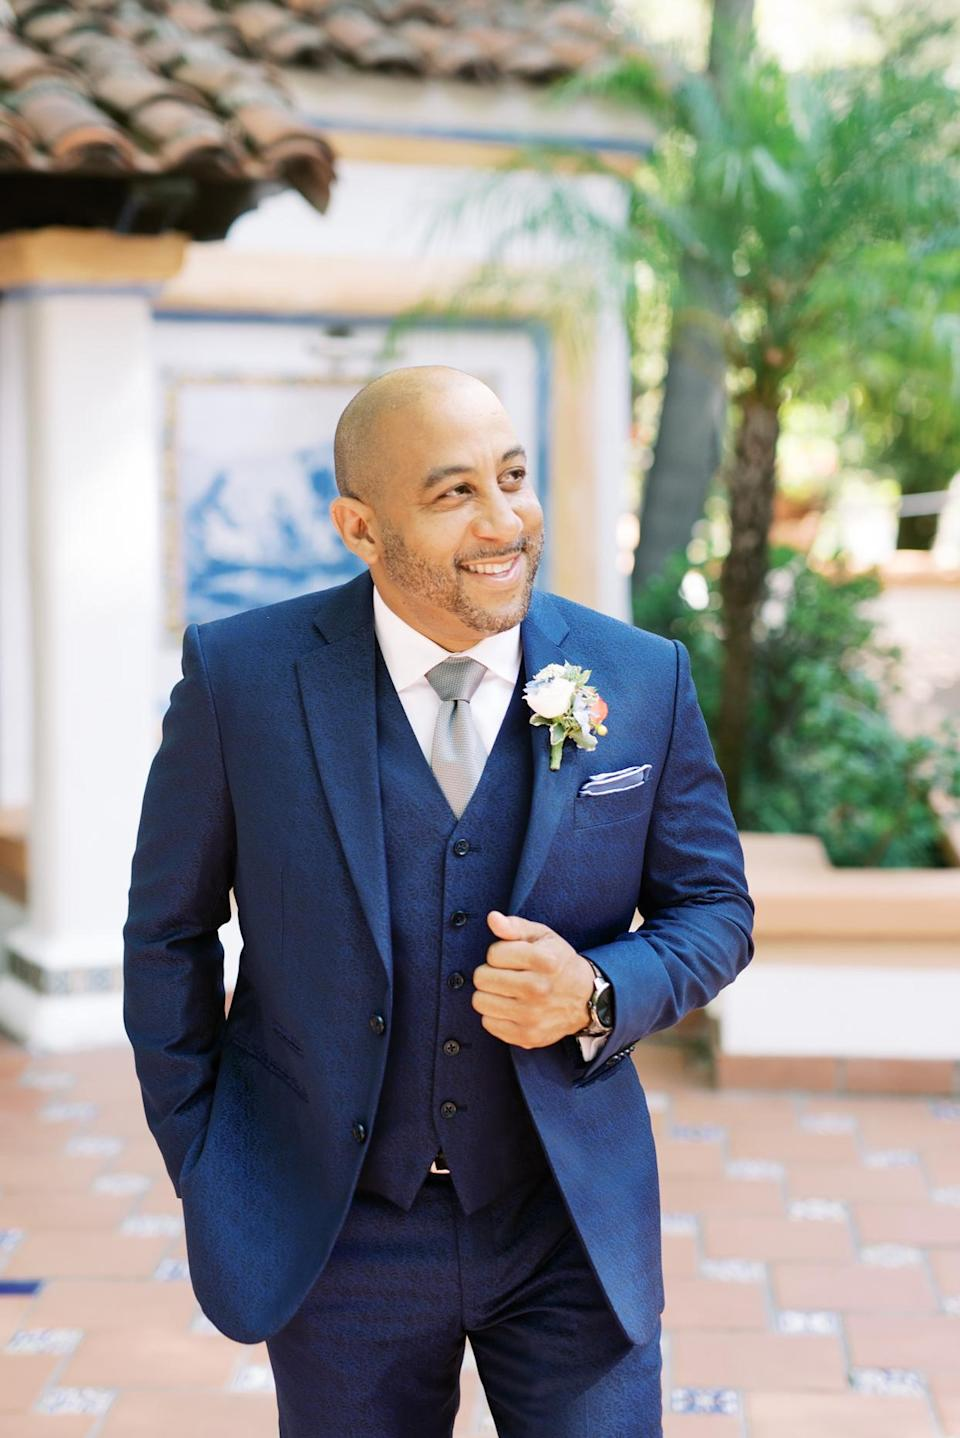 """<p>Charles donned a custom navy suit, made by California-based tailor <a href=""""http://www.peterdaniel.net/"""" rel=""""nofollow noopener"""" target=""""_blank"""" data-ylk=""""slk:Peter Daniels"""" class=""""link rapid-noclick-resp"""">Peter Daniels</a>, on the big day; a vest, hand-made shirt (complete with his initials), and silver tie completed the ensemble. """"Charles also rocked his birthday gift—a <a href=""""https://www.movado.com/us/en/home"""" rel=""""nofollow noopener"""" target=""""_blank"""" data-ylk=""""slk:Movado"""" class=""""link rapid-noclick-resp"""">Movado</a> Bold Chronograph watch,"""" says his bride. """"It was the perfect companion to his metal gray wedding band.""""</p>"""